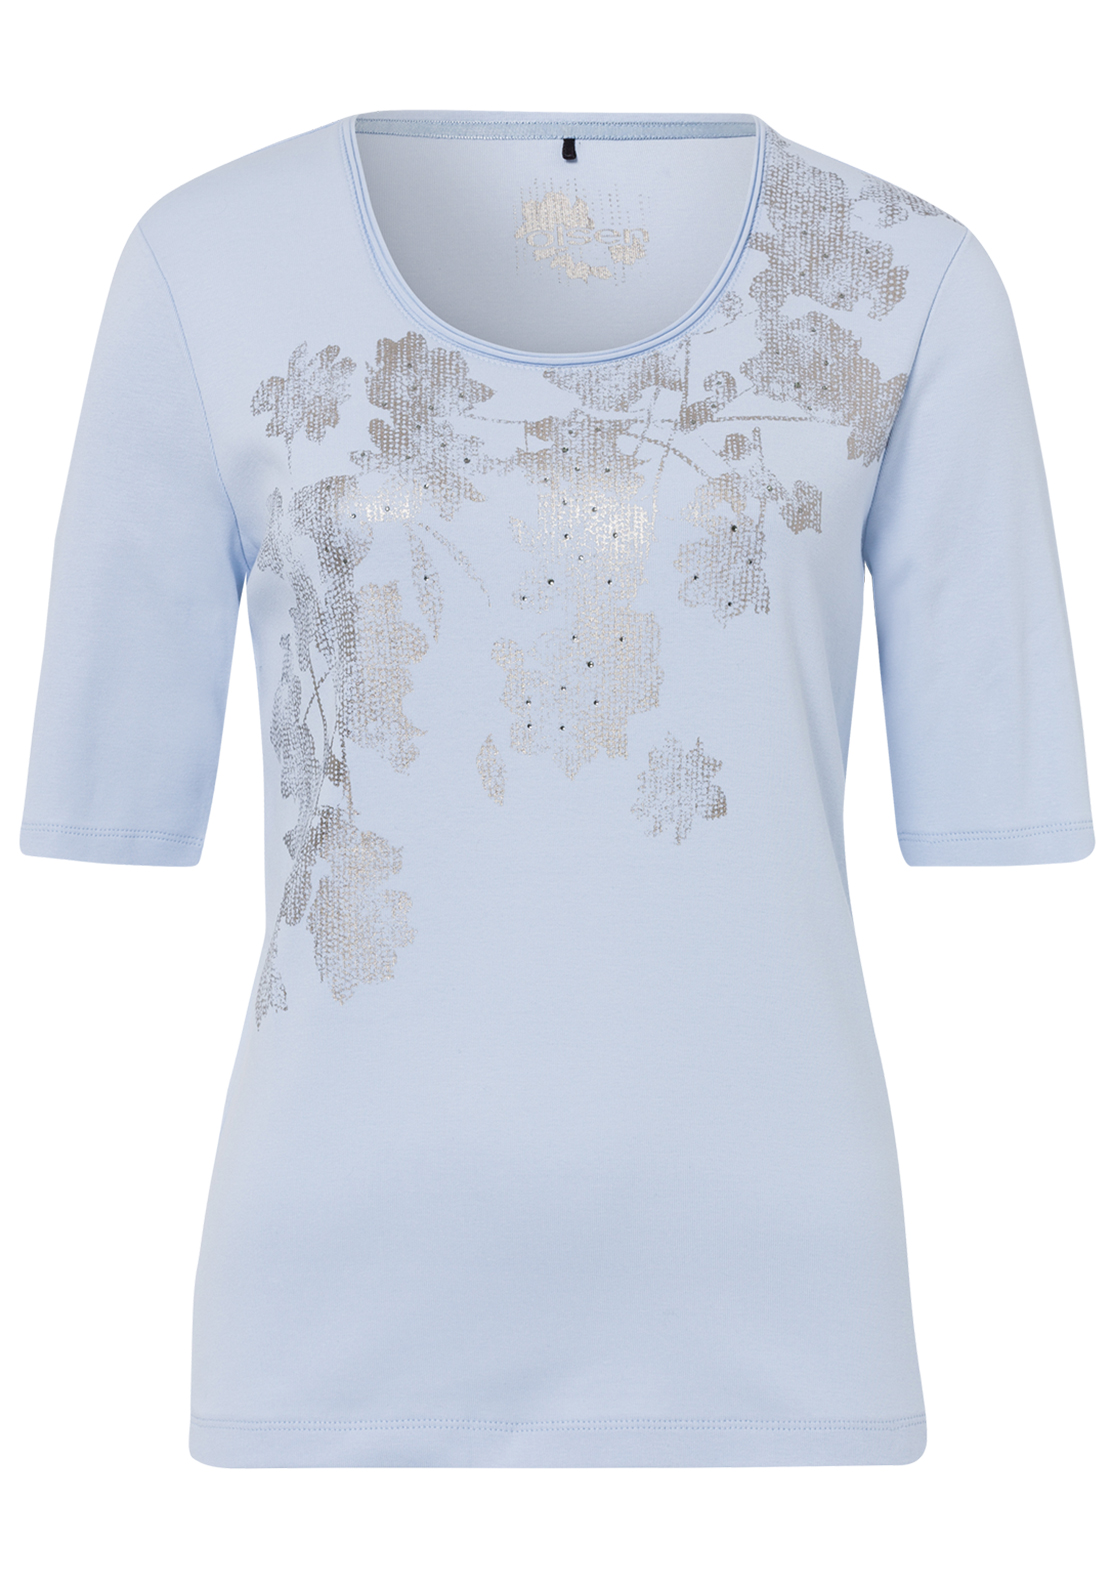 Olsen Metallic Print Half Sleeve T-Shirt, Pale Blue